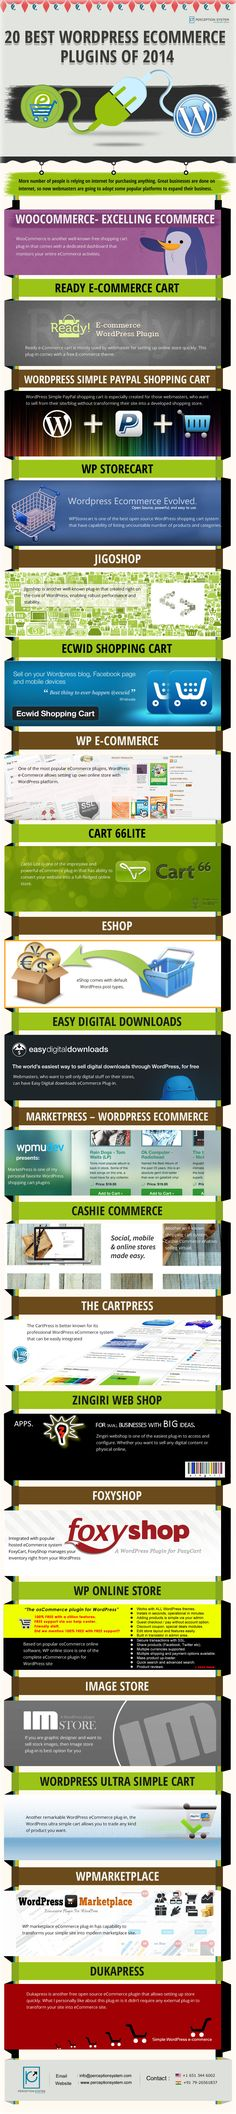 20 best Wordpress ecommerce plugins of 2014 #infographic